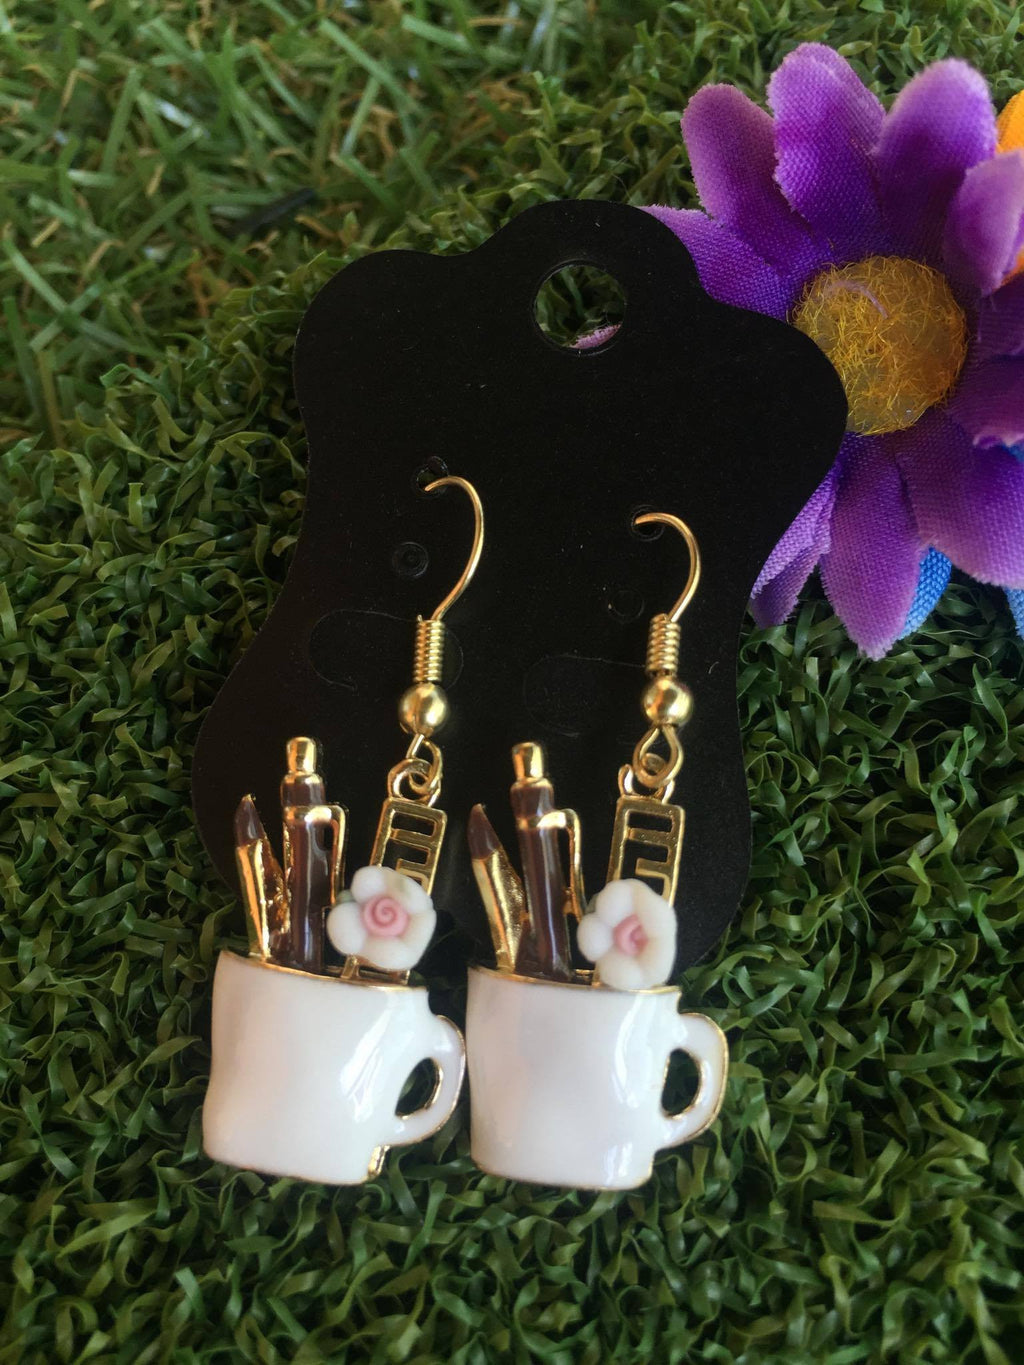 Desktop Mug Enamel Earrings